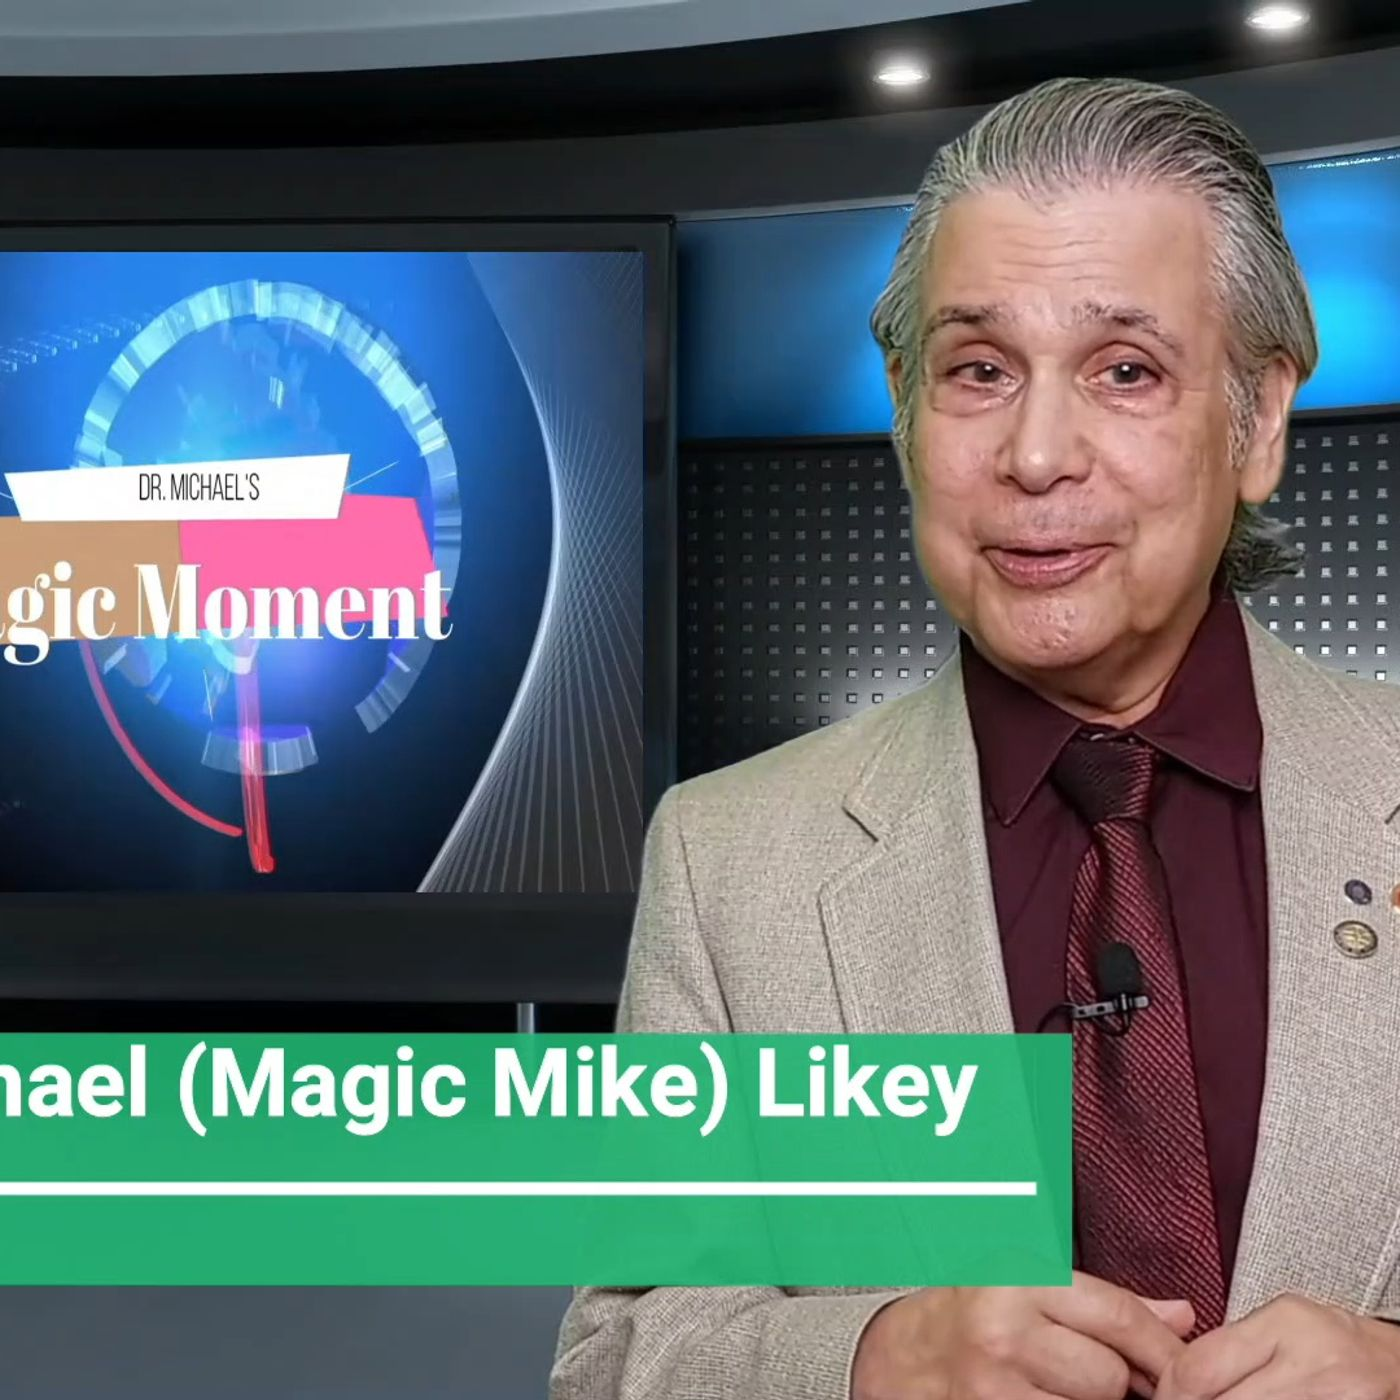 Dr. Michael's One-Minute Magic Moment-BEING IN THE MOMENT